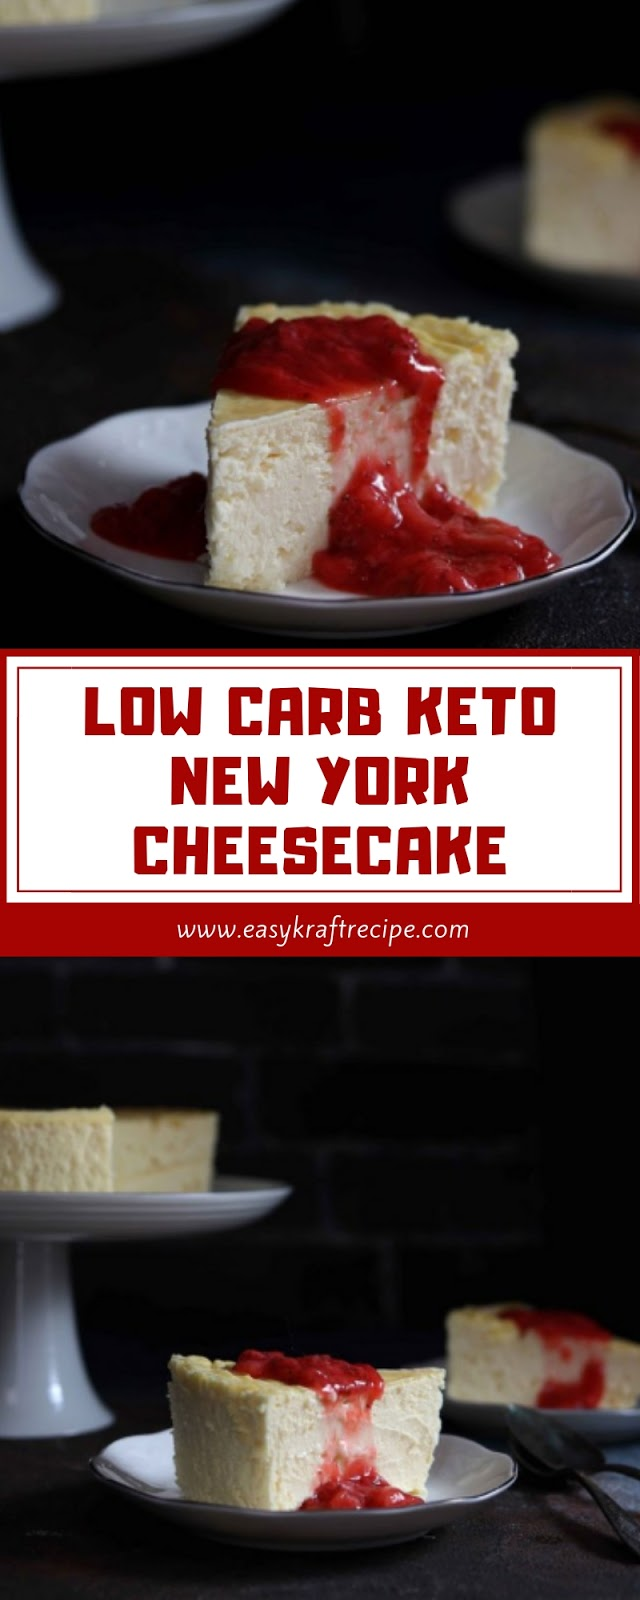 LOW CARB KETO NEW YORK CHEESECAKE